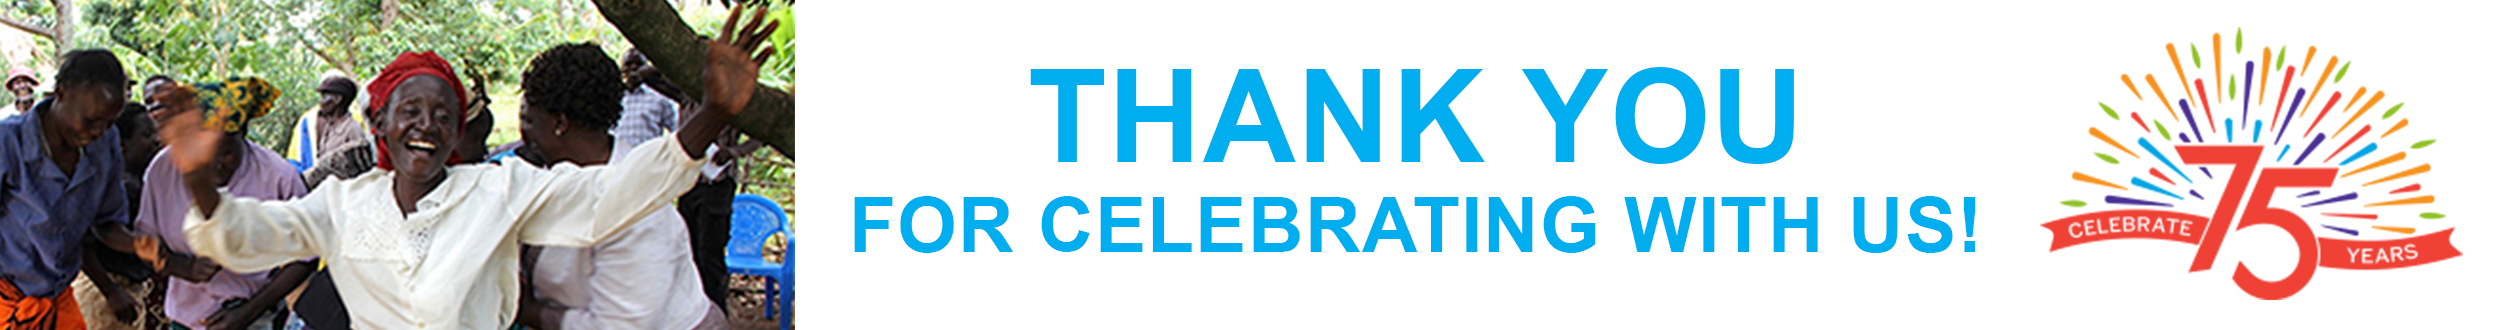 Thank you for celebrating with us!